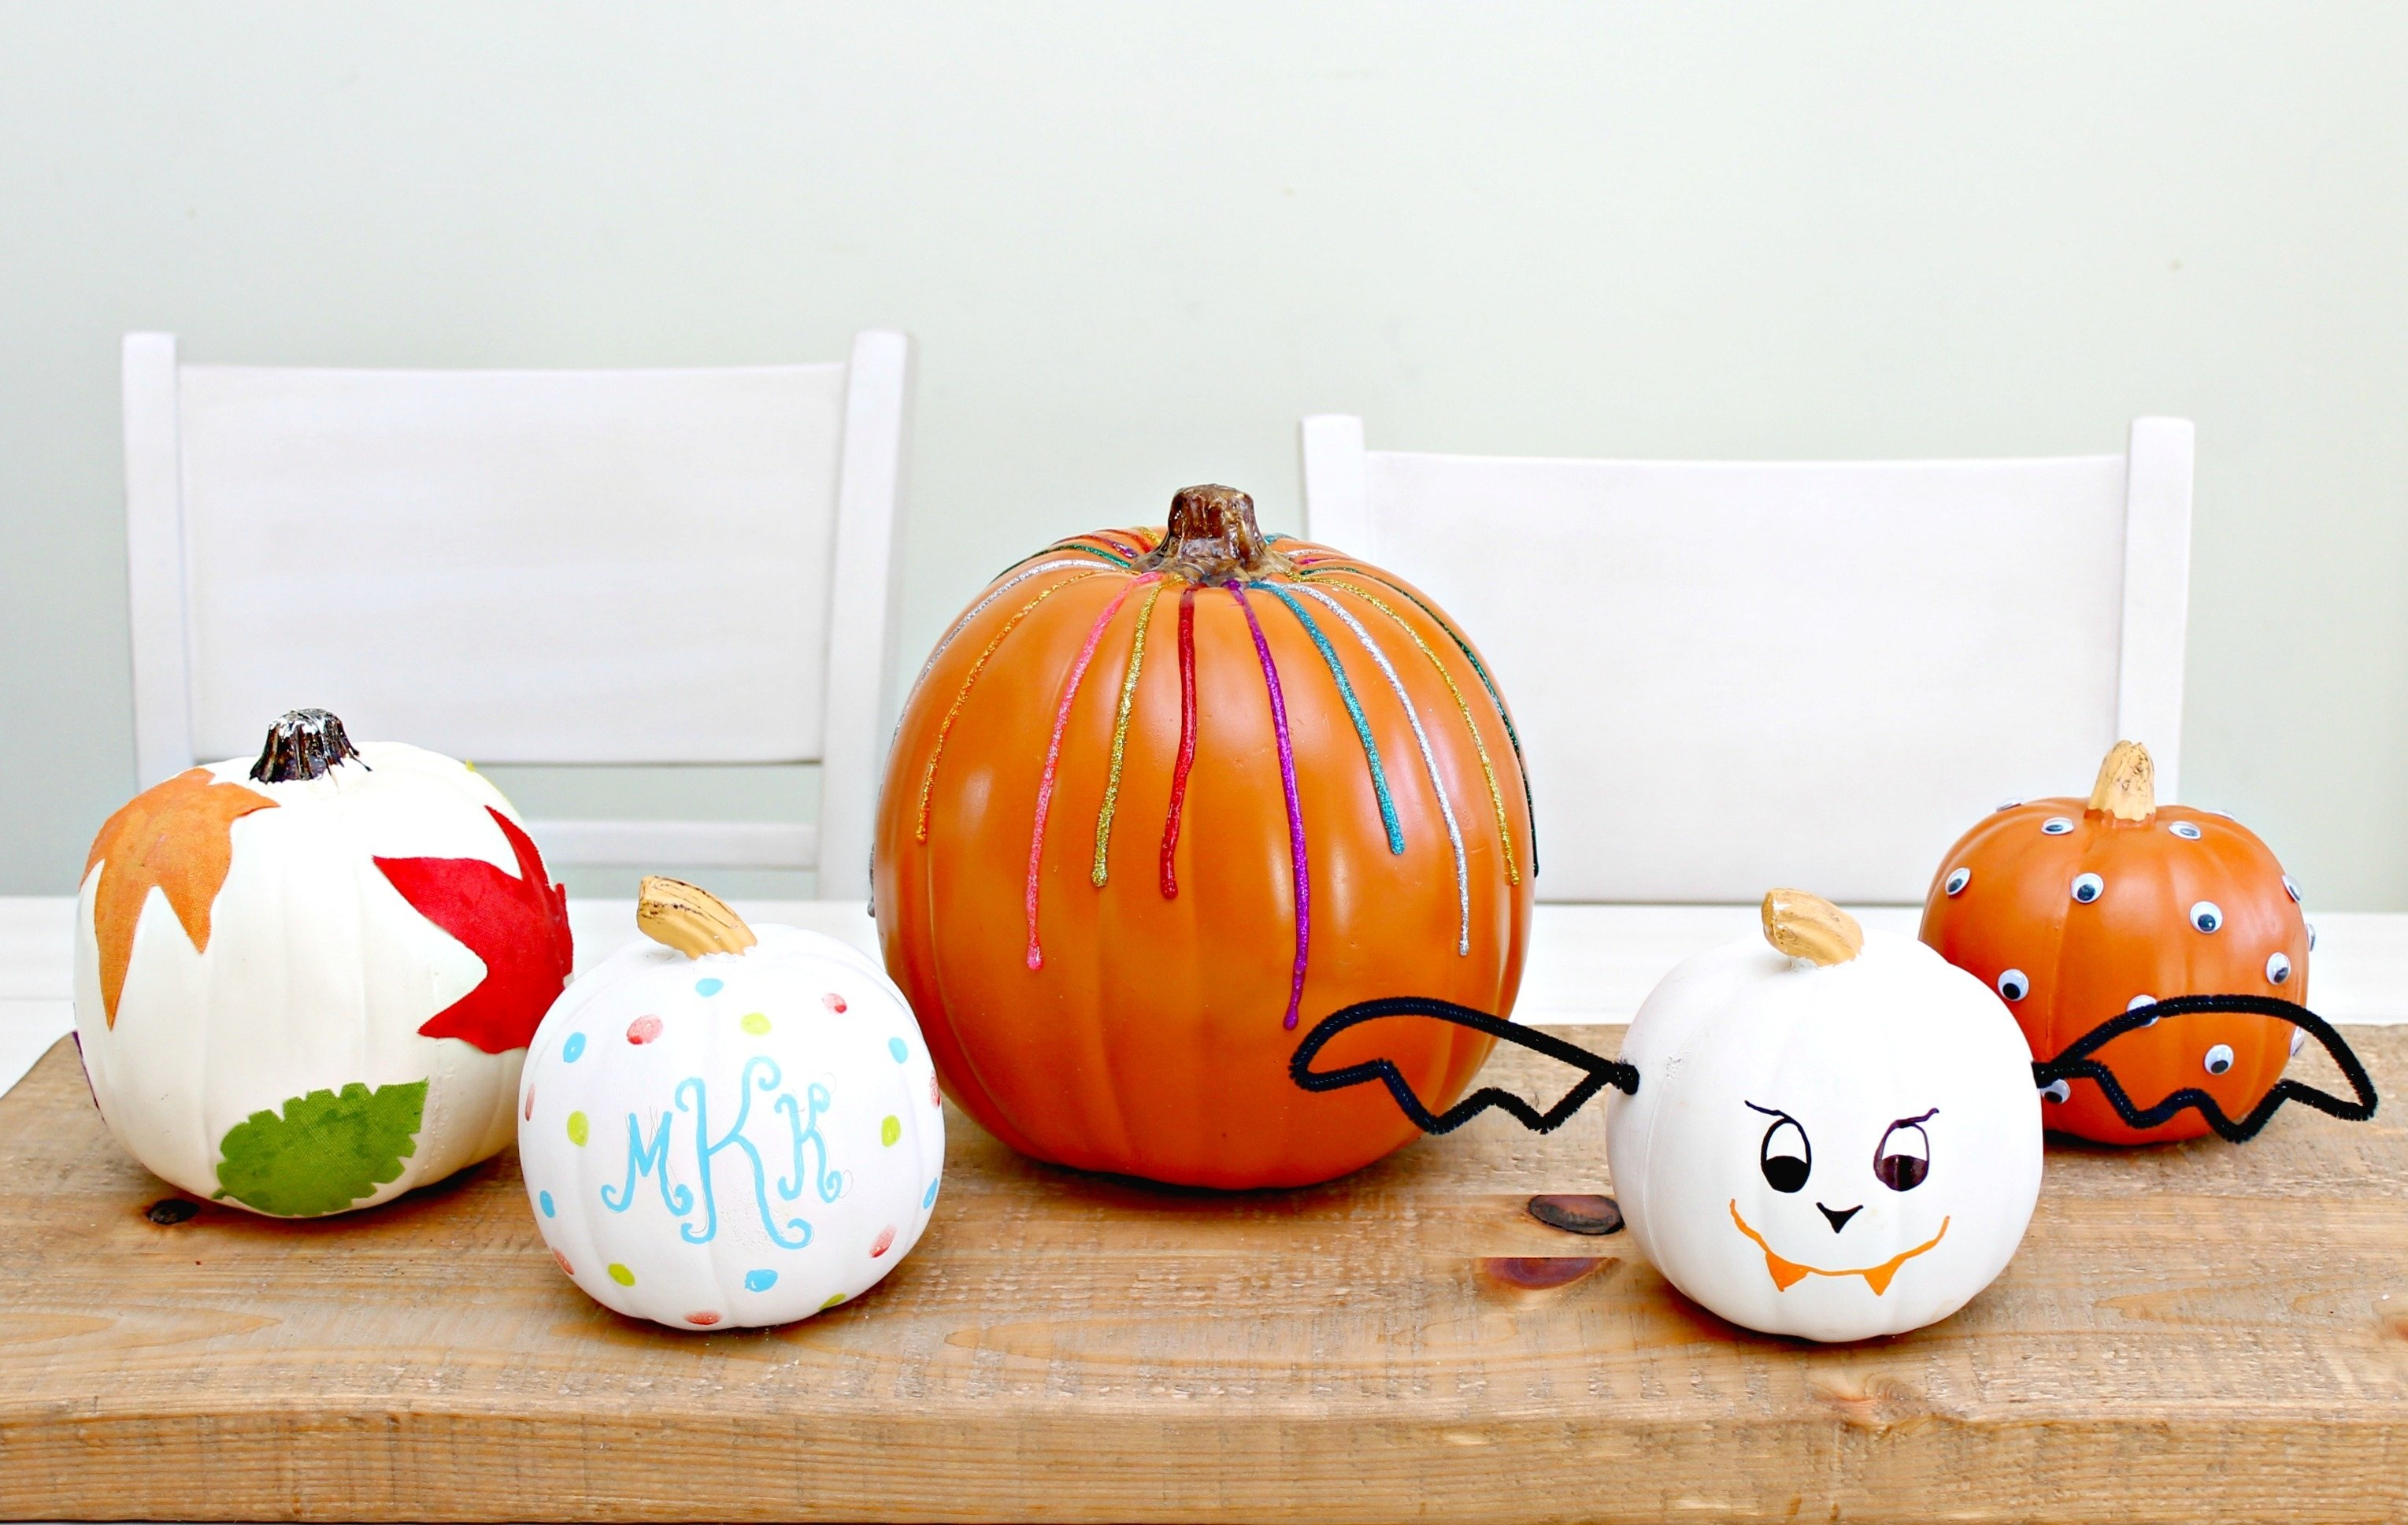 10 Attractive Pumpkin Decorating Ideas Without Carving no carve pumpkin decorating ideas mom 4 real 2 2020